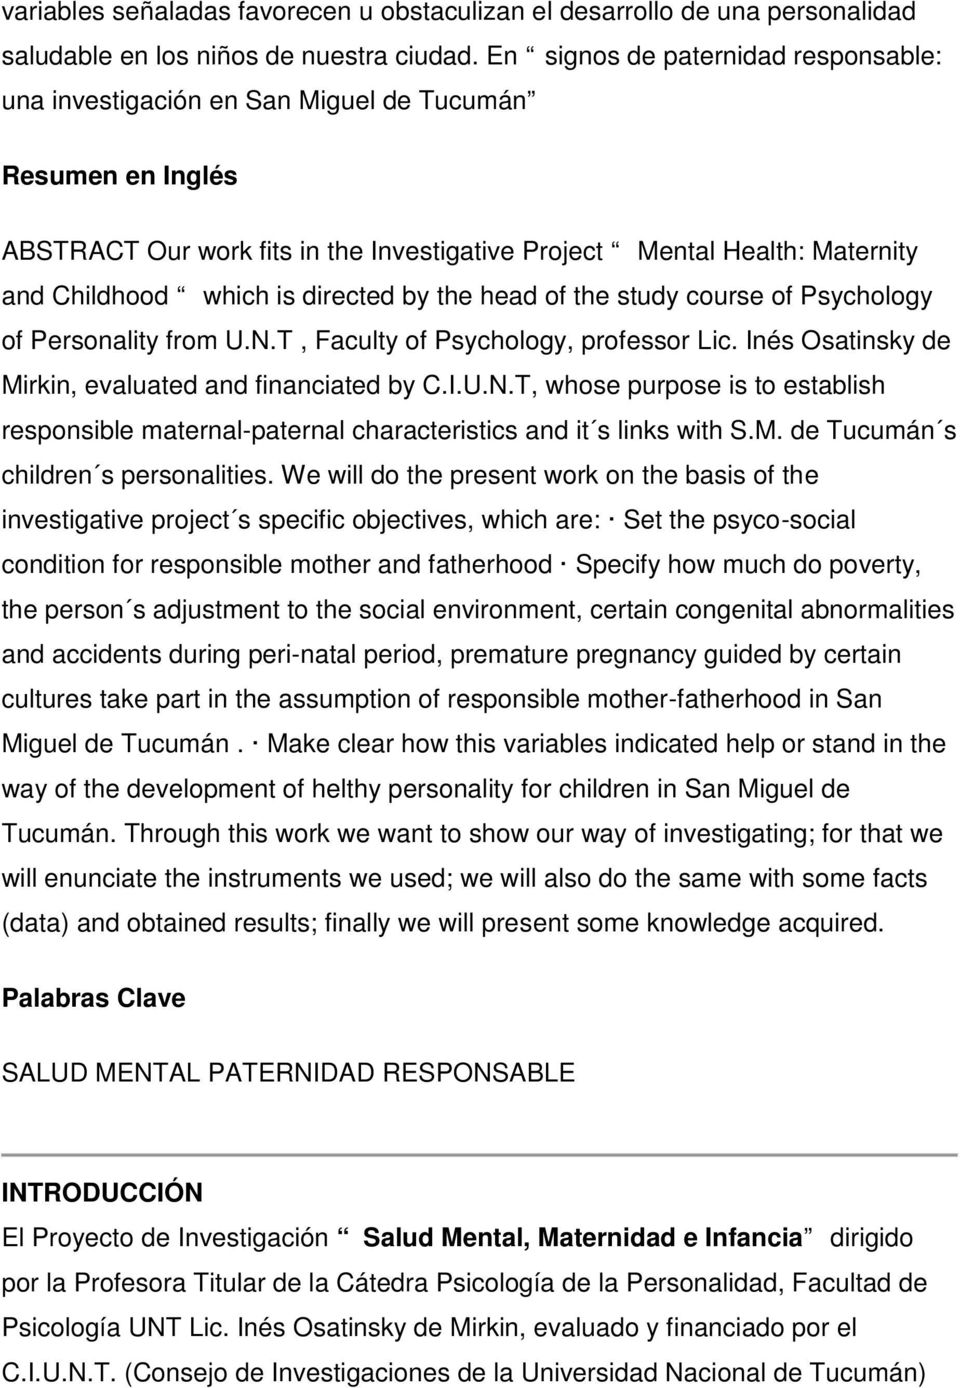 directed by the head of the study course of Psychology of Personality from U.N.T, Faculty of Psychology, professor Lic. Inés Osatinsky de Mirkin, evaluated and financiated by C.I.U.N.T, whose purpose is to establish responsible maternal-paternal characteristics and it s links with S.